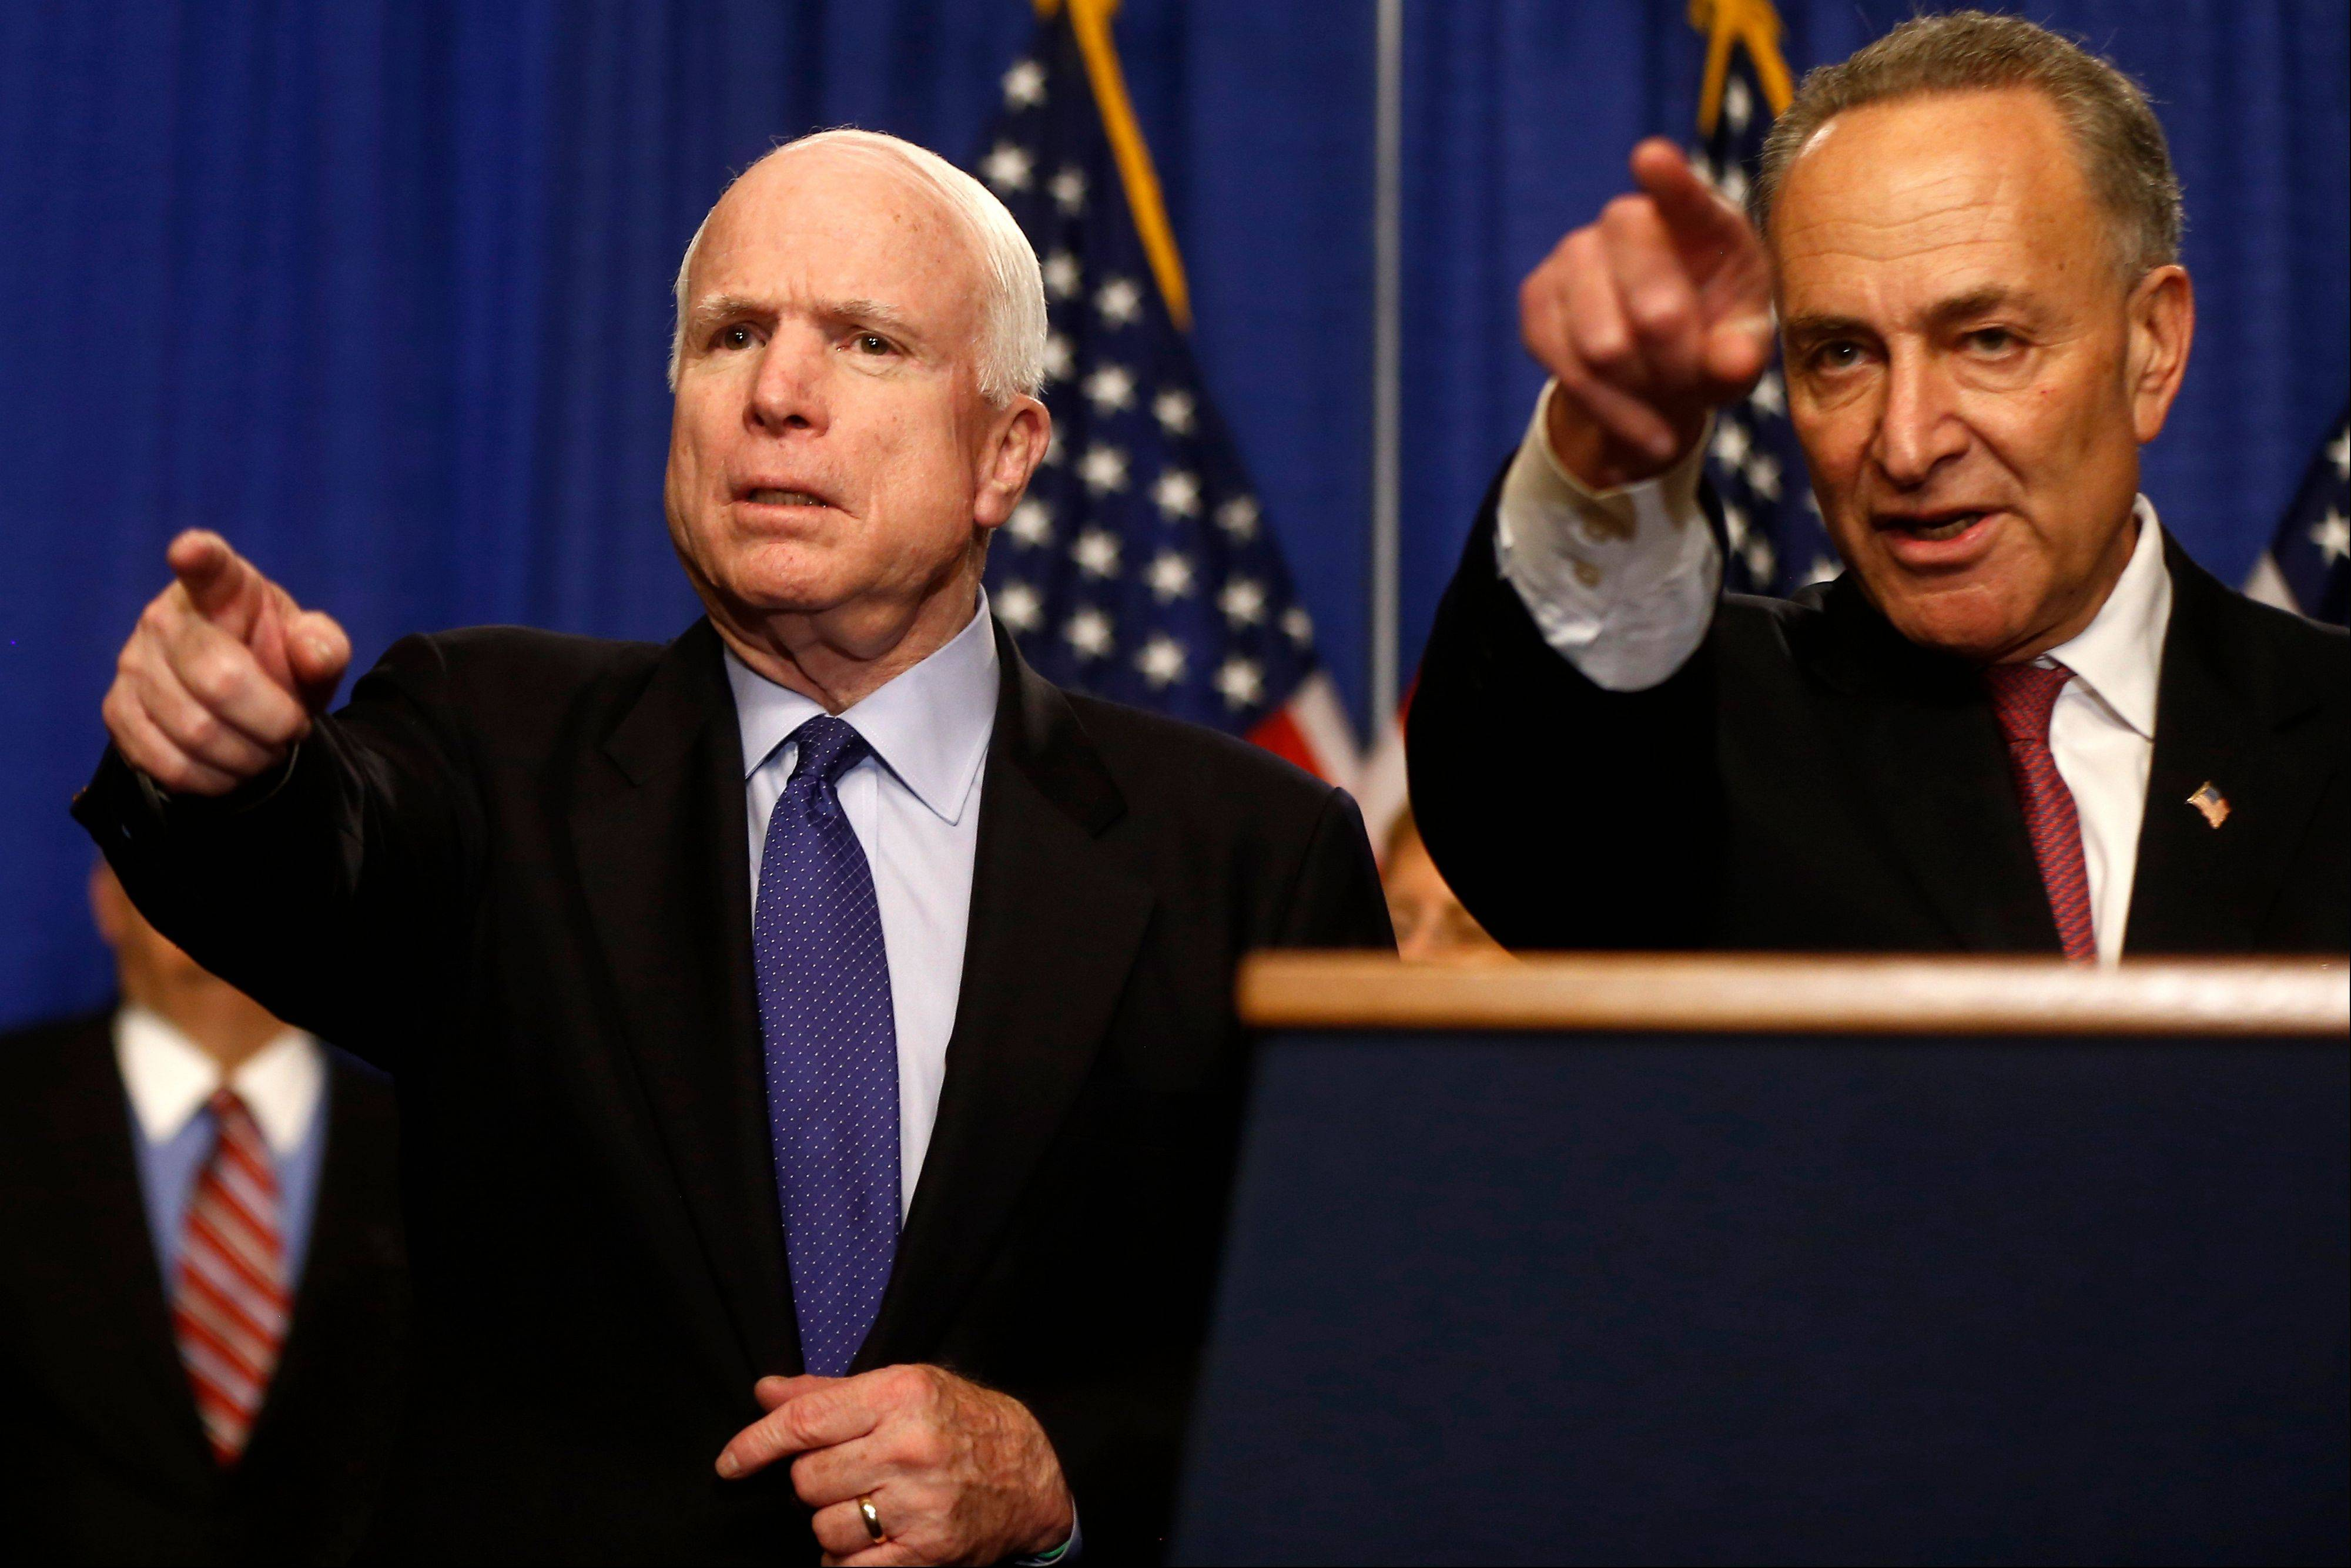 Sen. John McCain, R-Ariz., left, and Sen. Charles Schumer, D-N.Y. take questions during a news conference on immigration reform legislation, Thursday, April 18, 2013, on Capitol Hill in Washington.